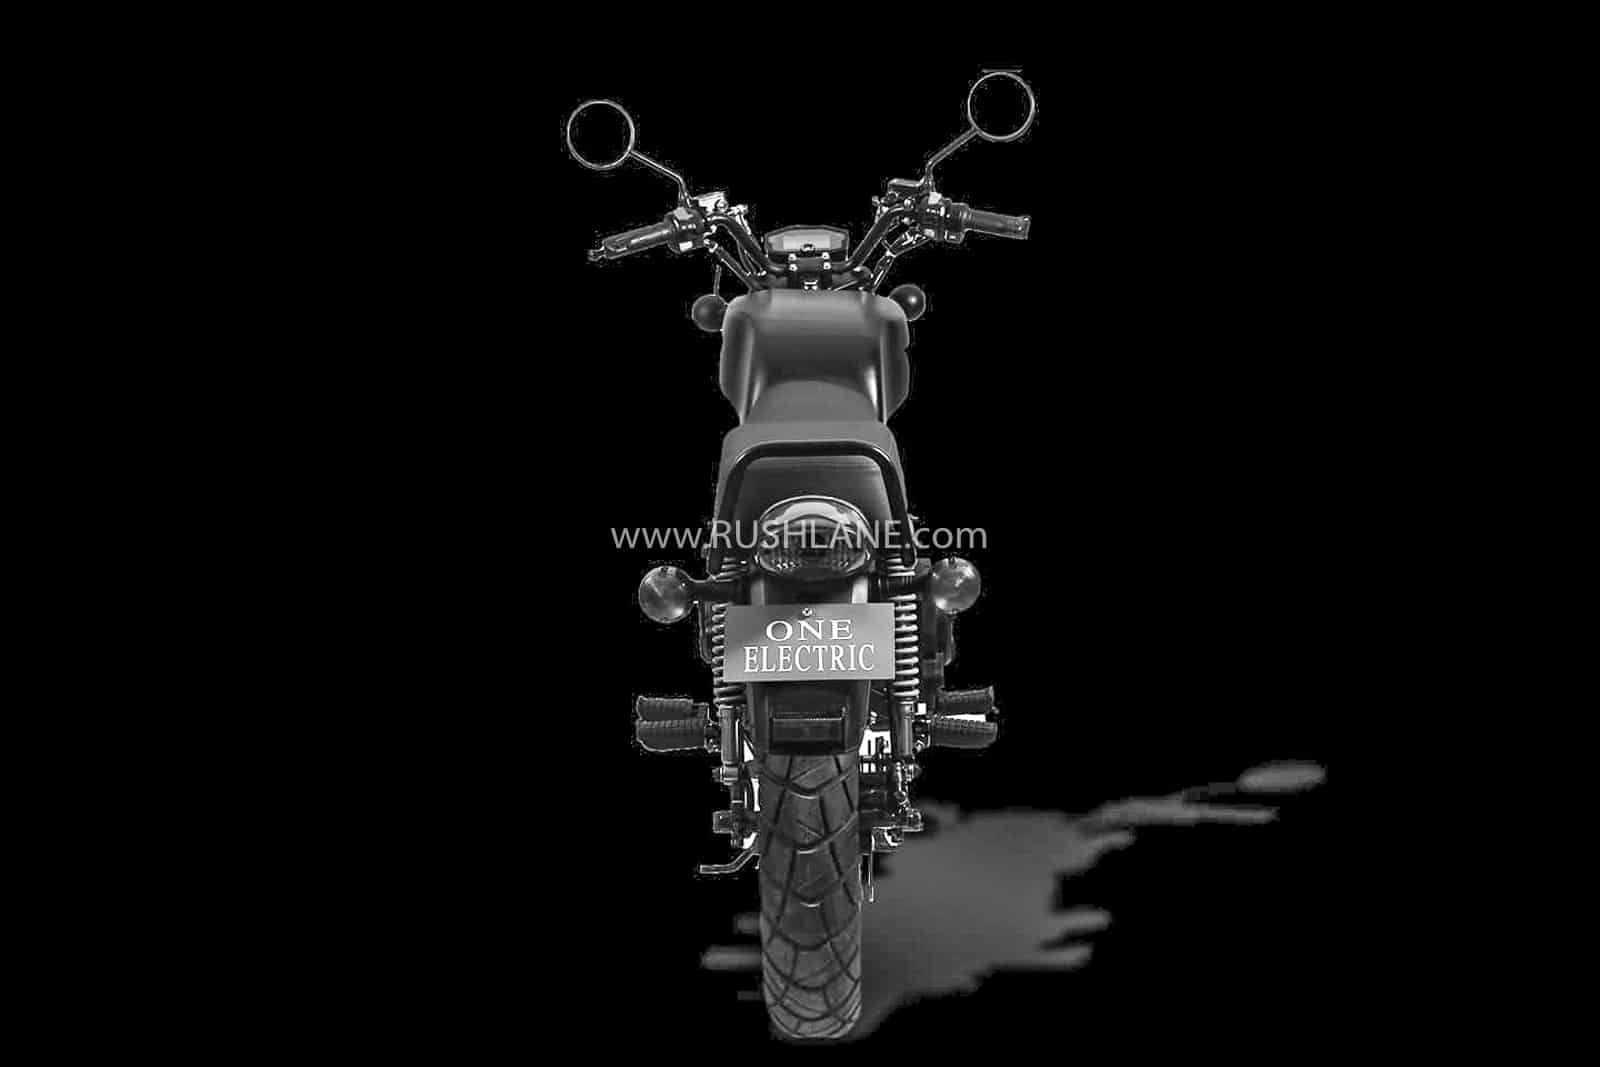 One electric motorcycle kridn